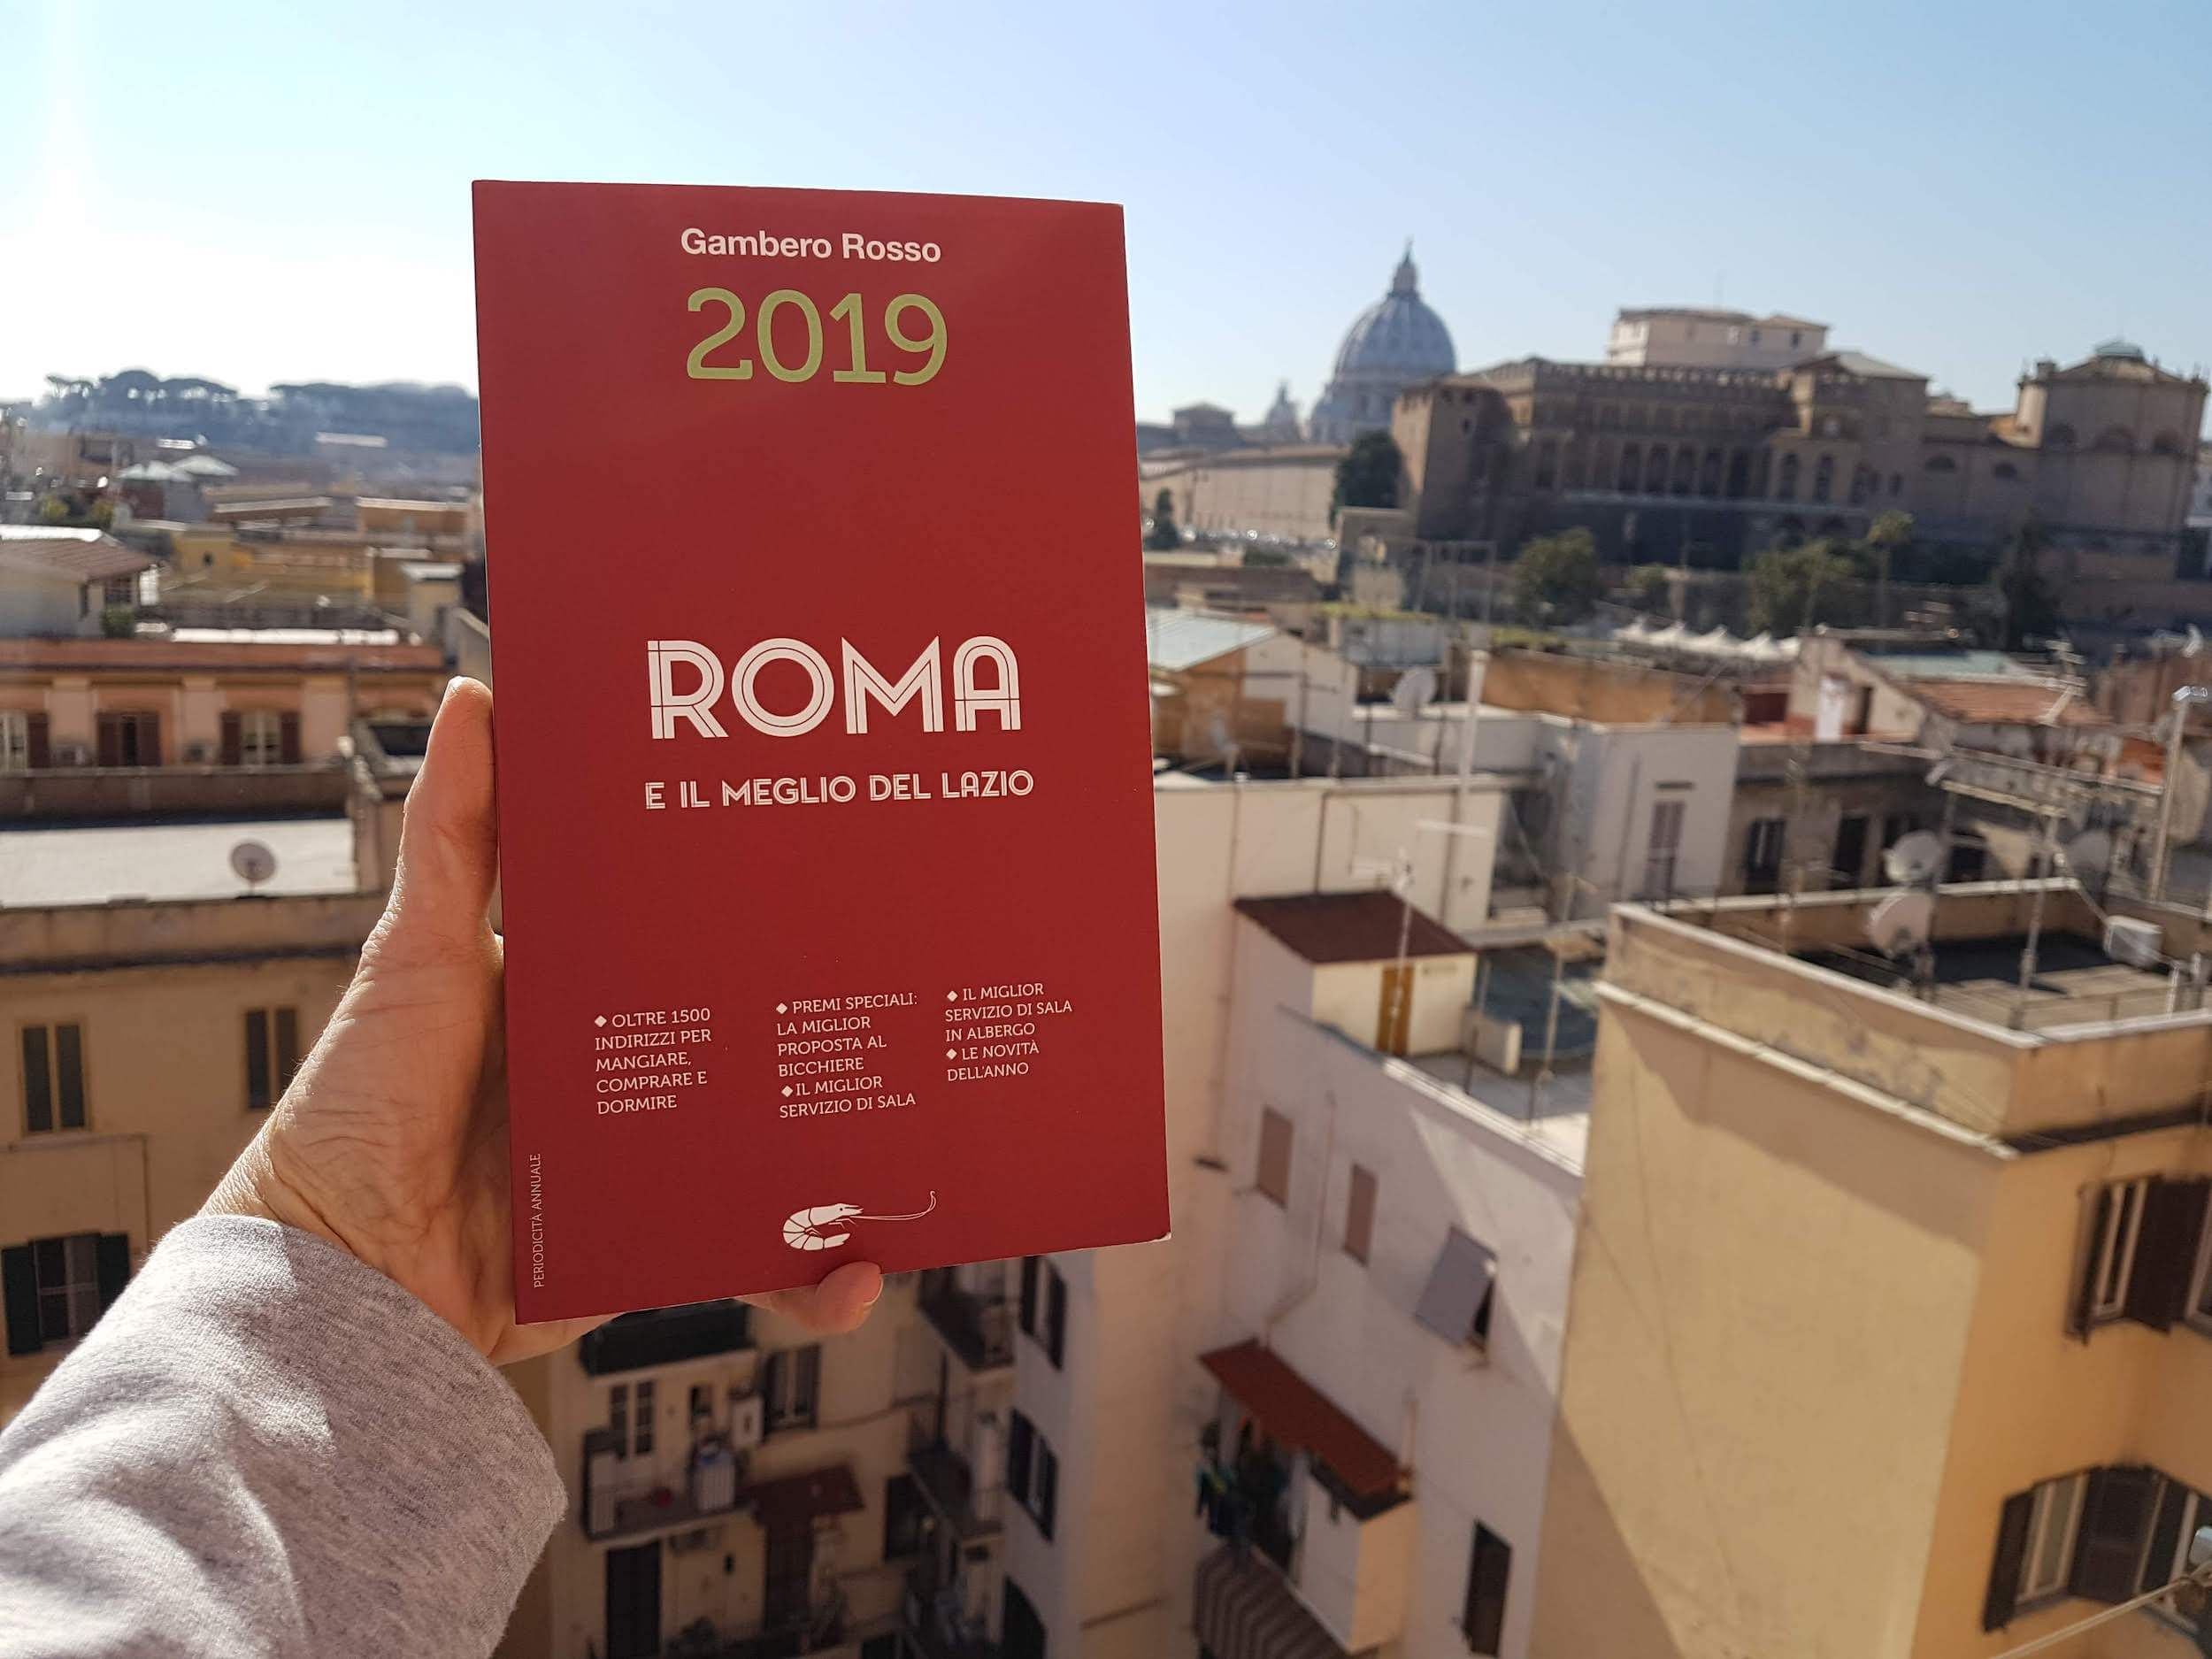 The Gambero Rosso Rome and lazio guidebook